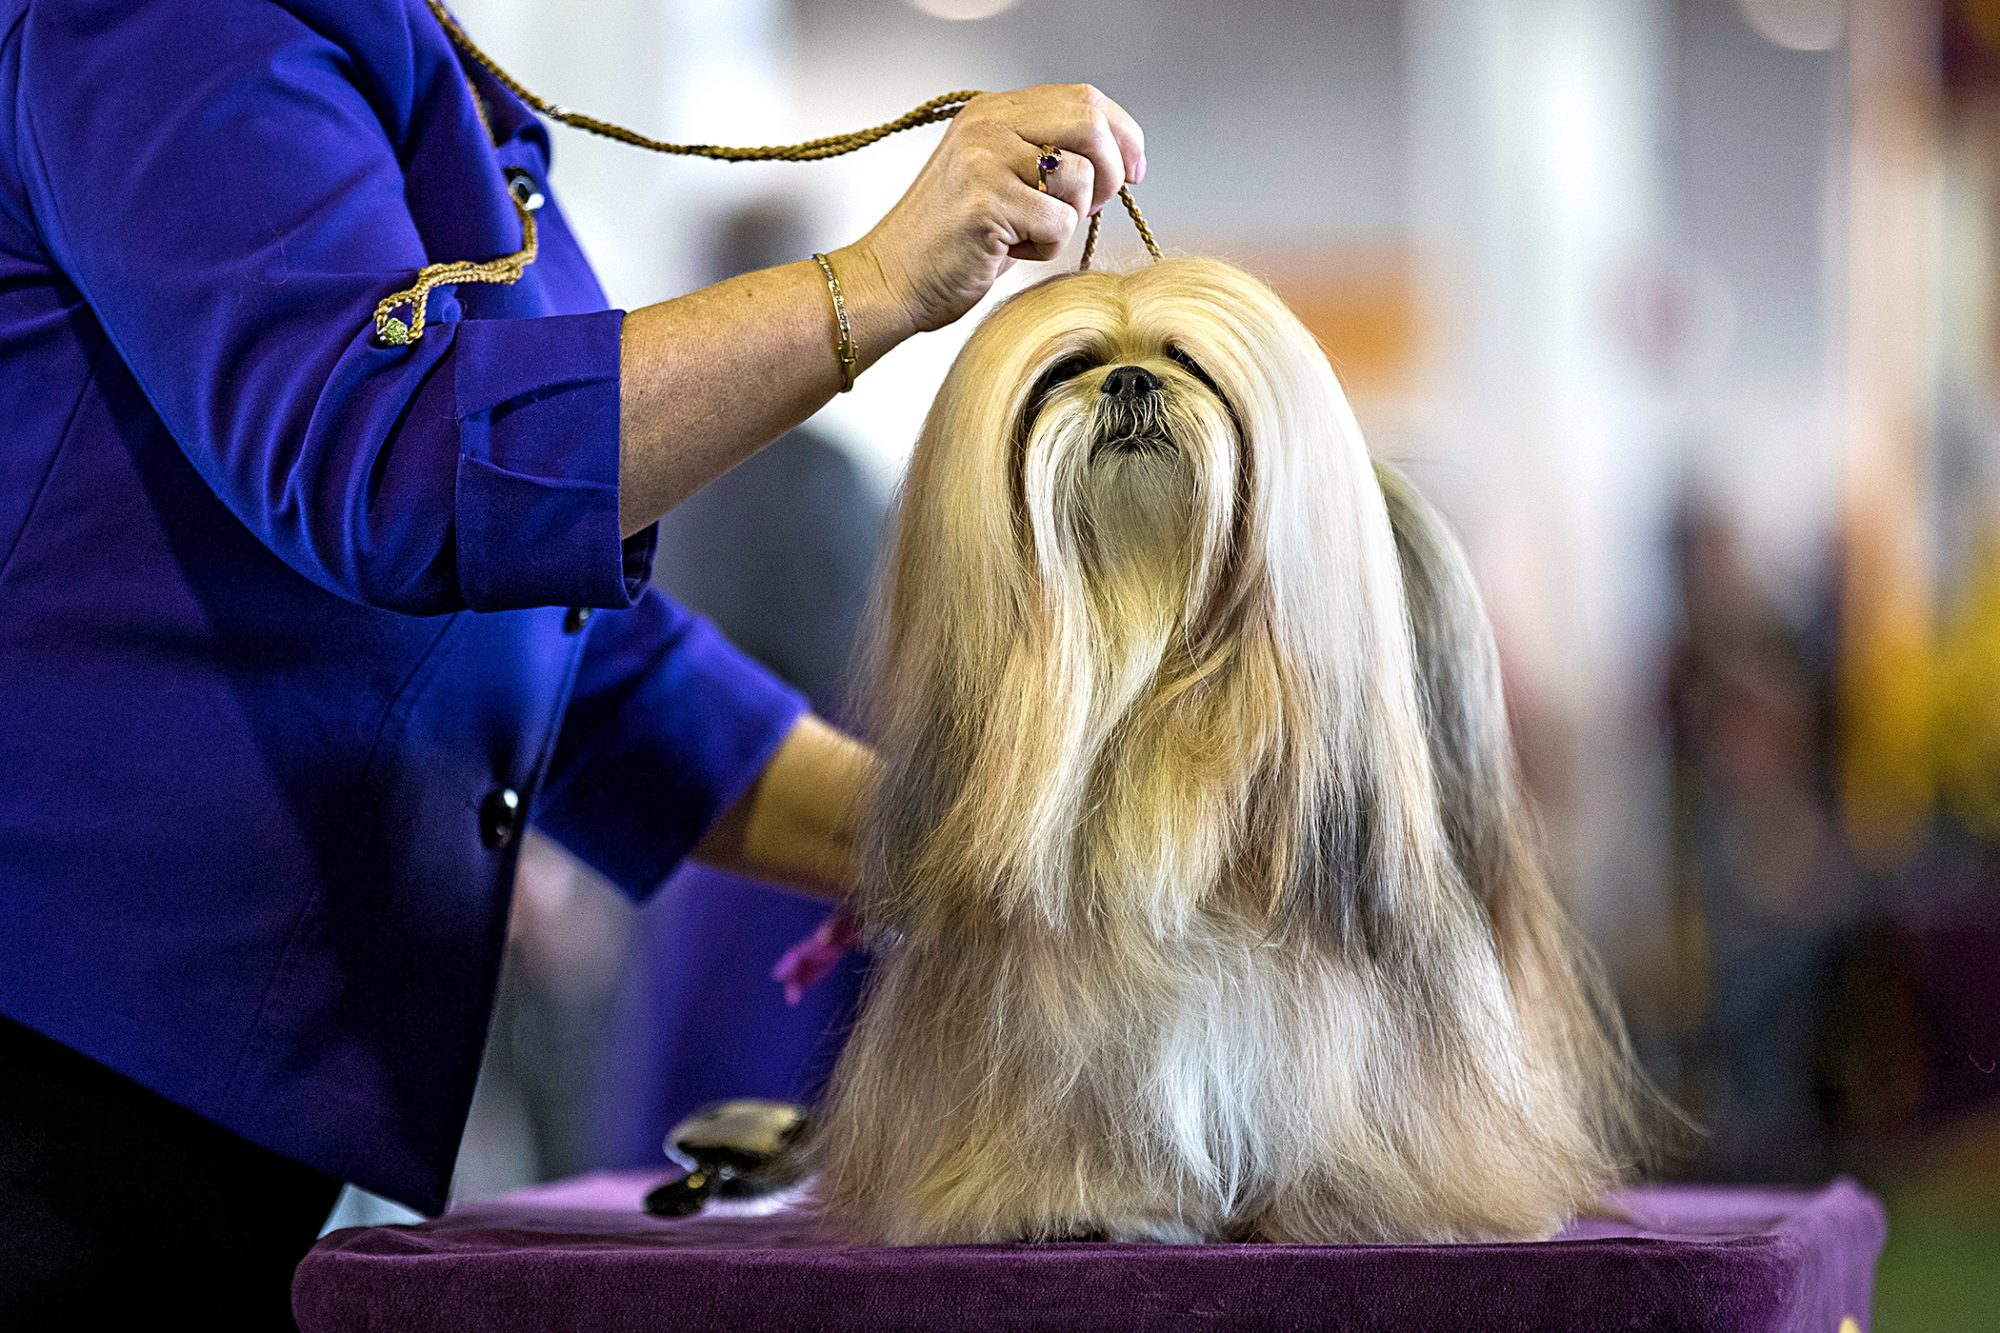 lhasa apso dog breed being judged at the Westminster dog show